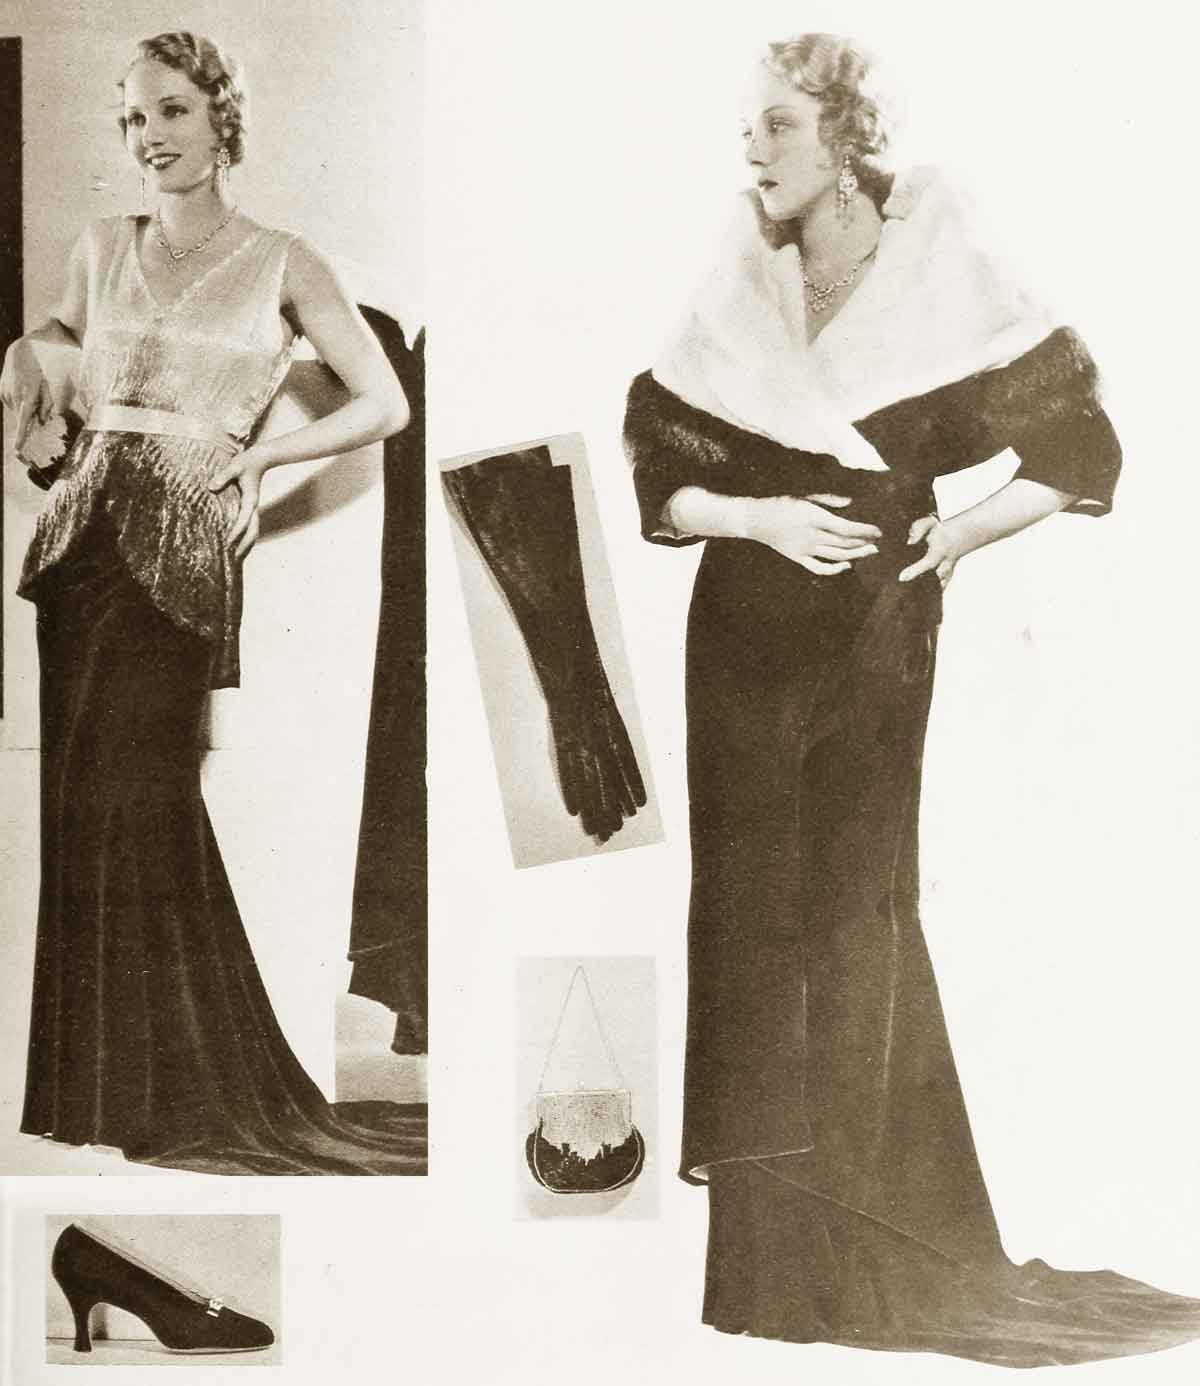 1930s-Fashion---A-Study-in-Accessories---Evening-ensemble